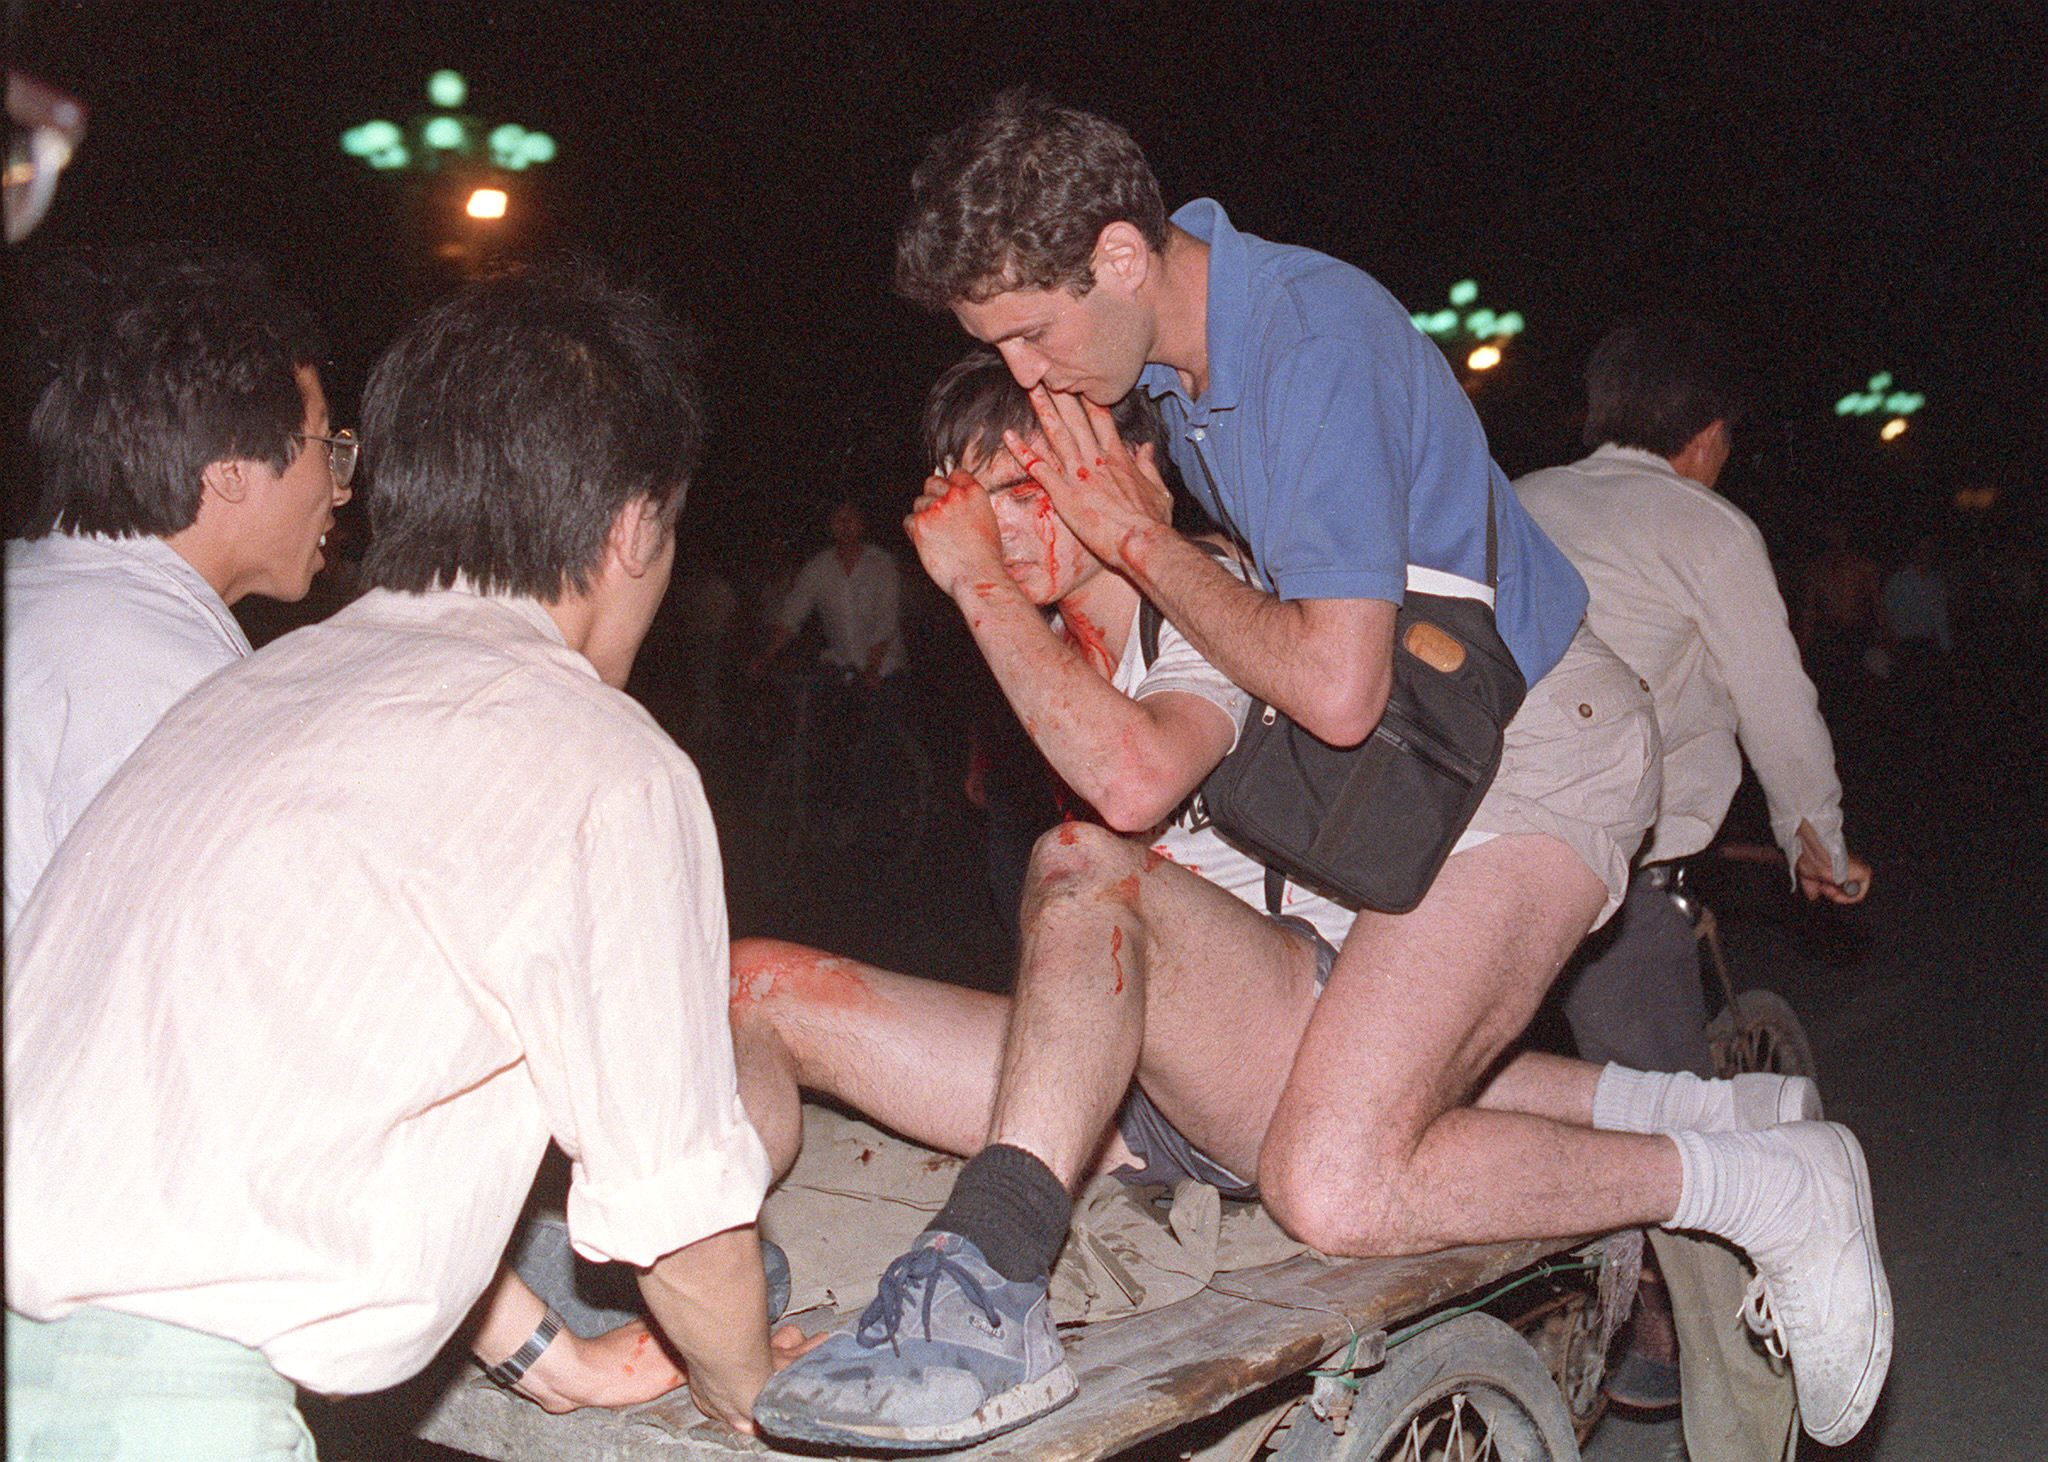 "(FILES) Taken care by others, an unidentified foreign journalist (2nd-r) is carried out from the clash site between the army and students 04 June 1989 near Tiananmen Square. On the night of 03 and 04 June 1989, Tiananmen Square sheltered the last pro-democracy supporters. In a show of force, China leaders vented their fury and frustration on student dissidents and their pro-democracy supporters. Several hundred people have been killed and thousands wounded when soldiers moved on Tiananmen Square during a violent military crackdown ending six weeks of student demonstrations, known as the Beijing Spring movement. According to Amnesty International, five years after the crushing of the Chinese pro-democracy movement, ""thousands"" of prisoners remained in jail. (Photo credit should read TOMMY CHENG/AFP/Getty Images)"